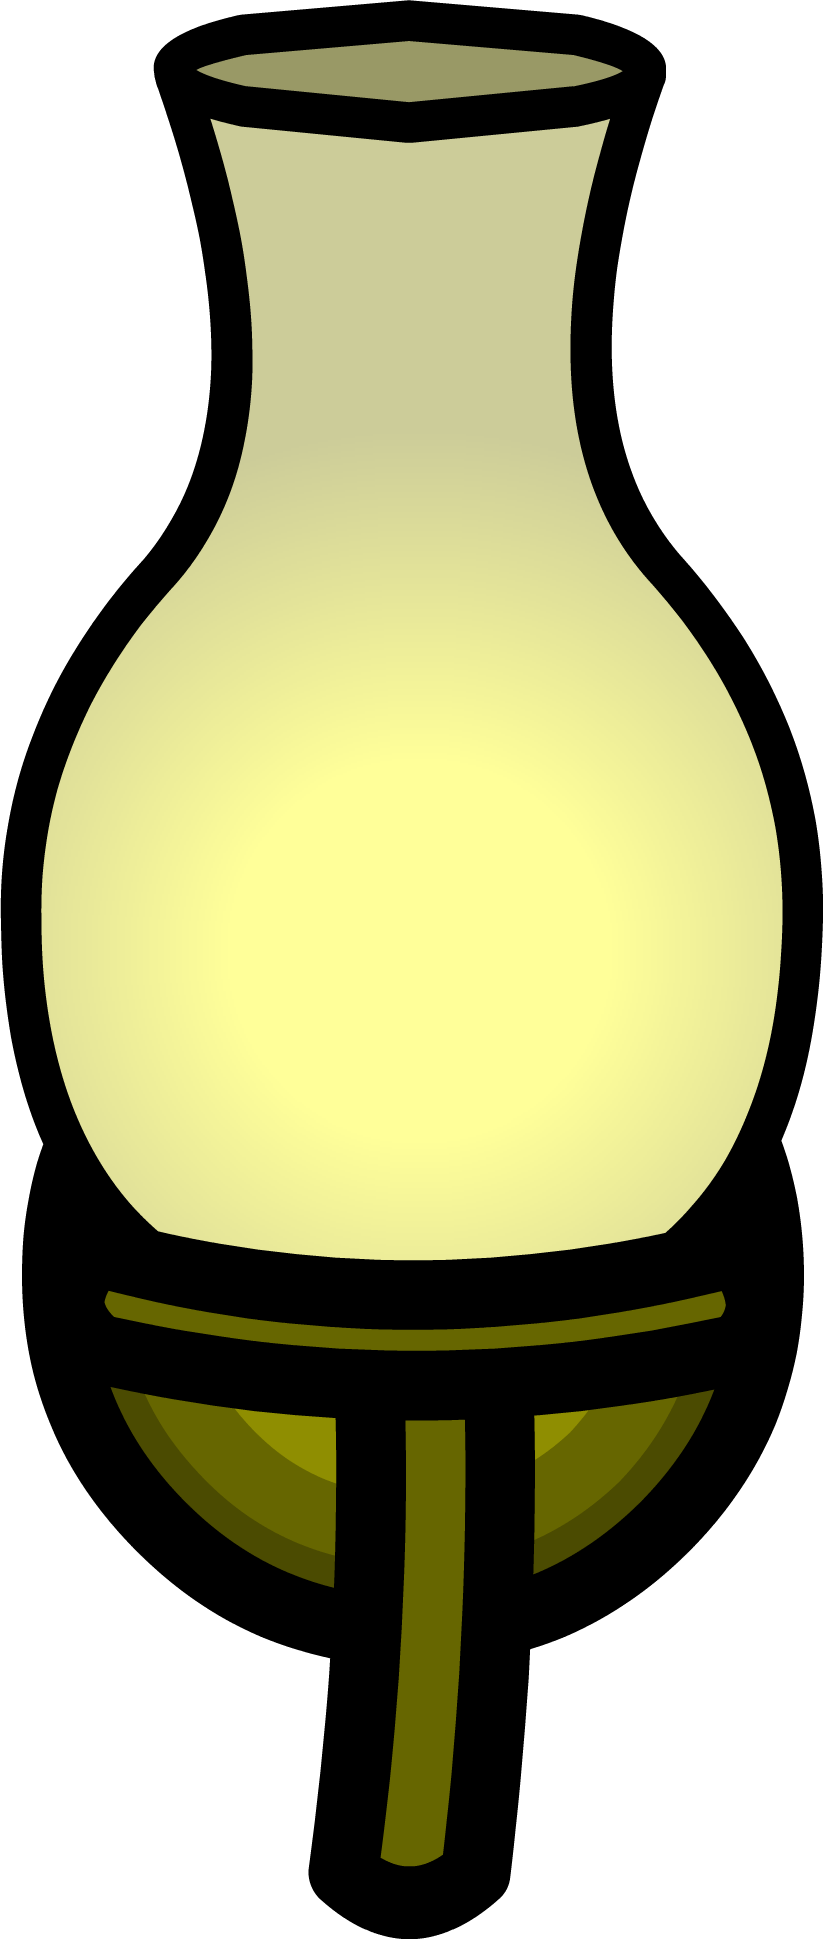 Image - Single Wall Light sprite 002.png | Club Penguin Wiki ...